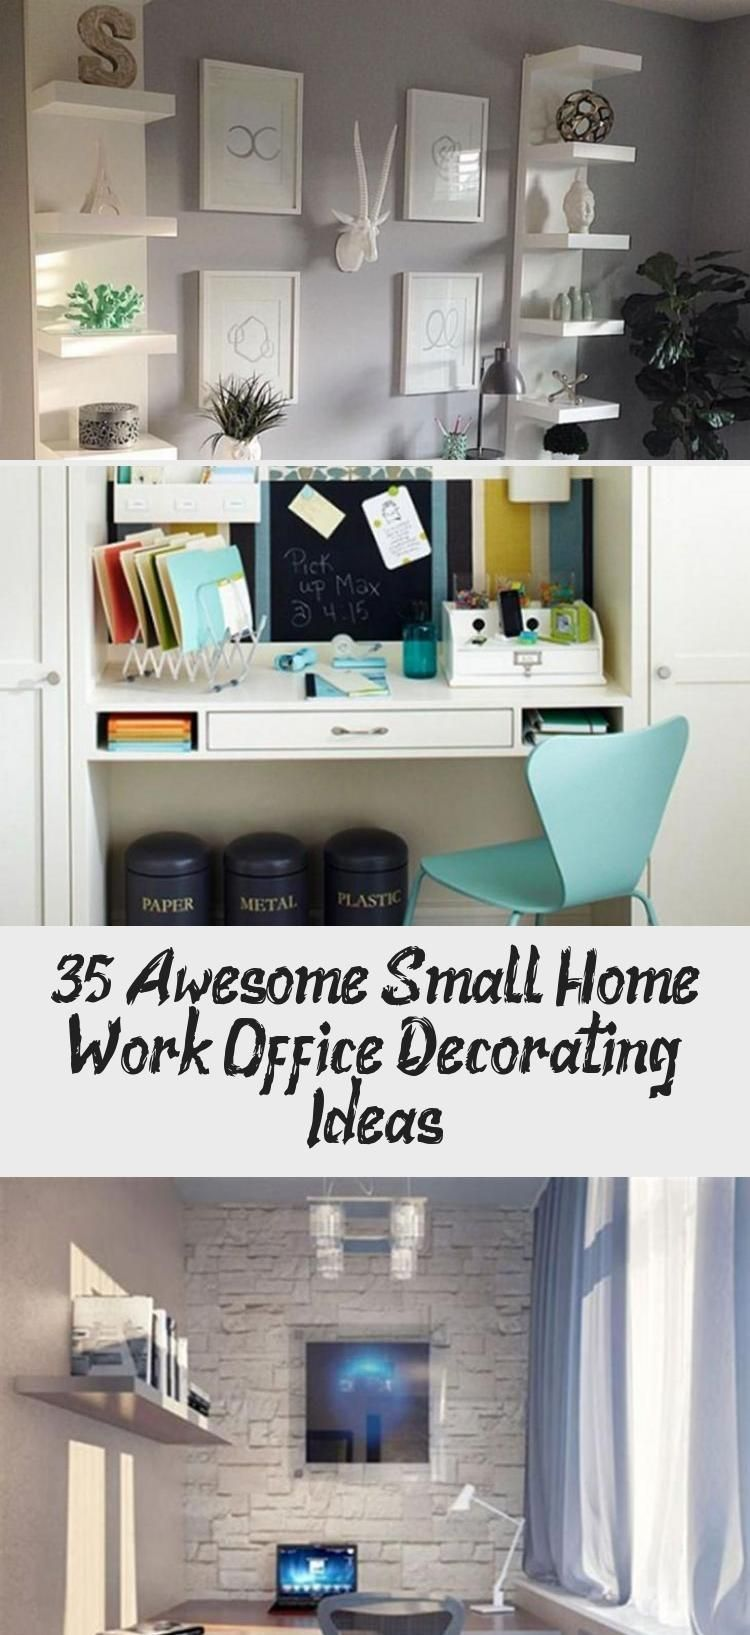 35 Awesome Small Home Work Office Decorating Ideas Awesome